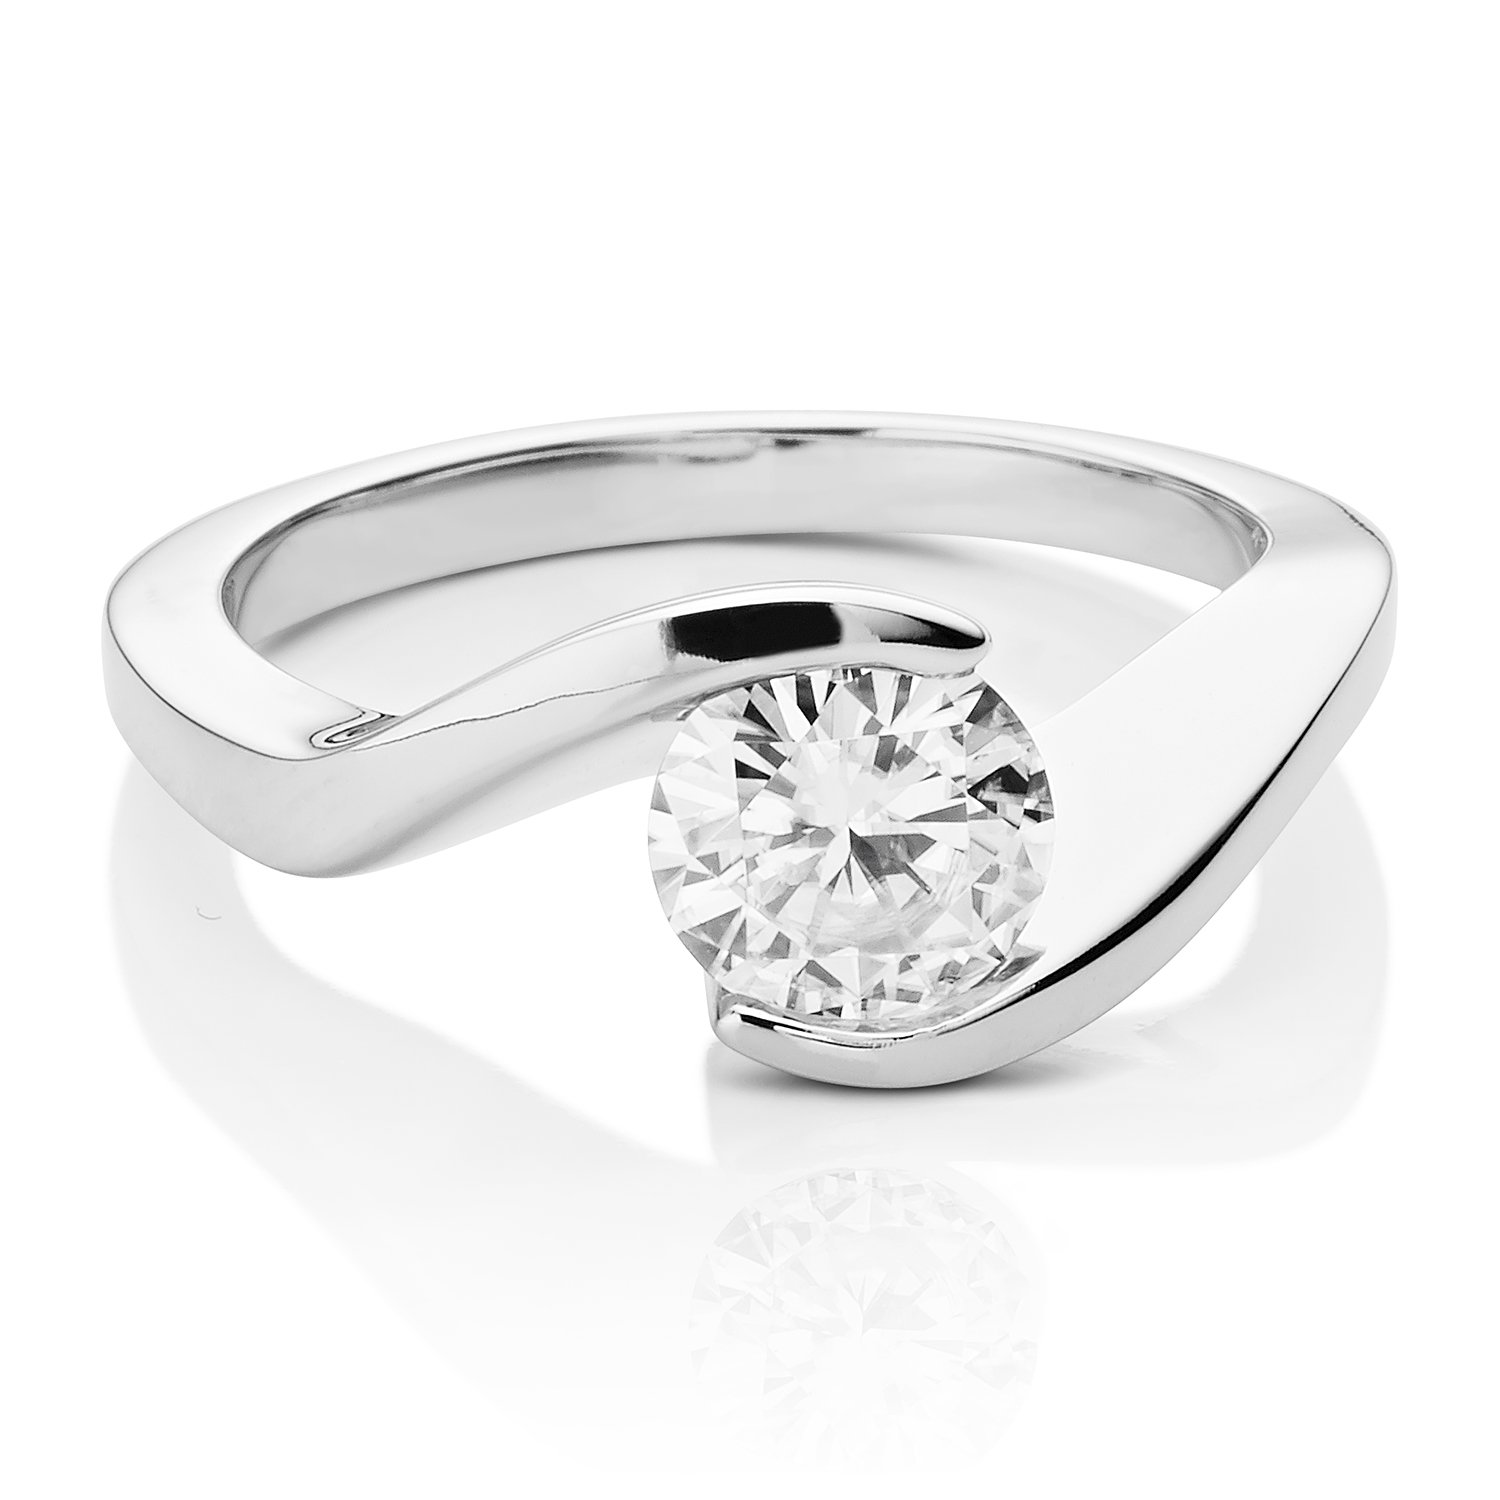 Forever Brilliant Round 6.5mm Moissanite Engagement Ring - size 8, 1.00ct DEW By Charles & Colvard by Charles & Colvard (Image #2)